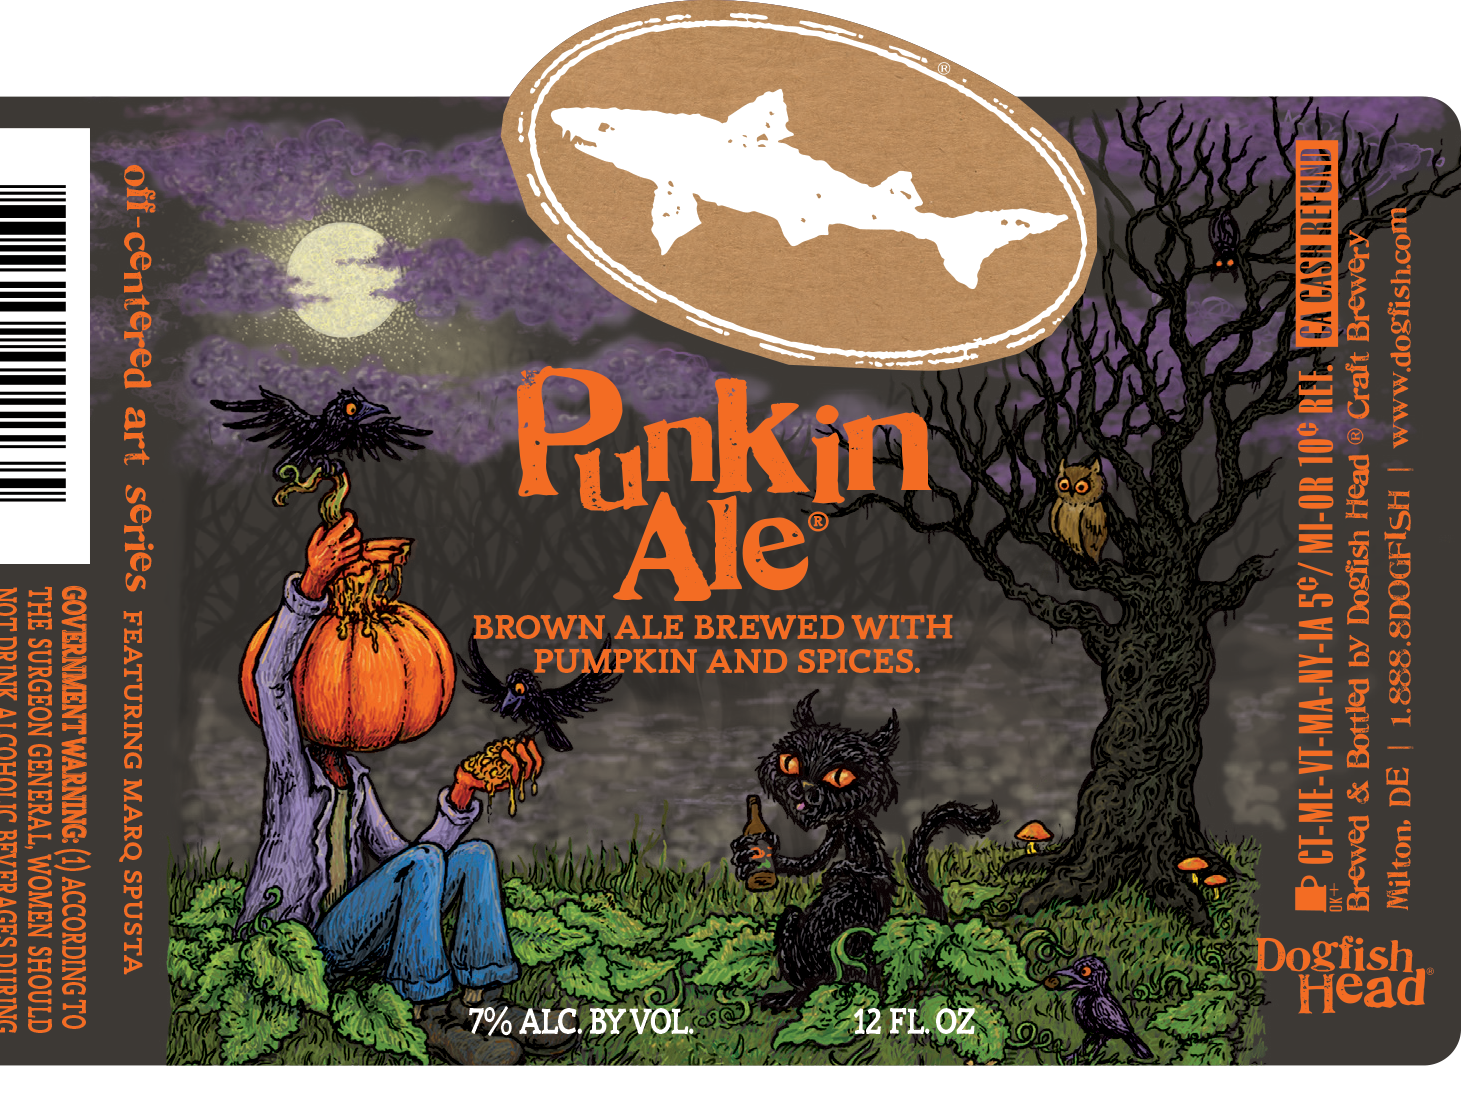 Dogfish Head's Punkin Ale label for 2018.